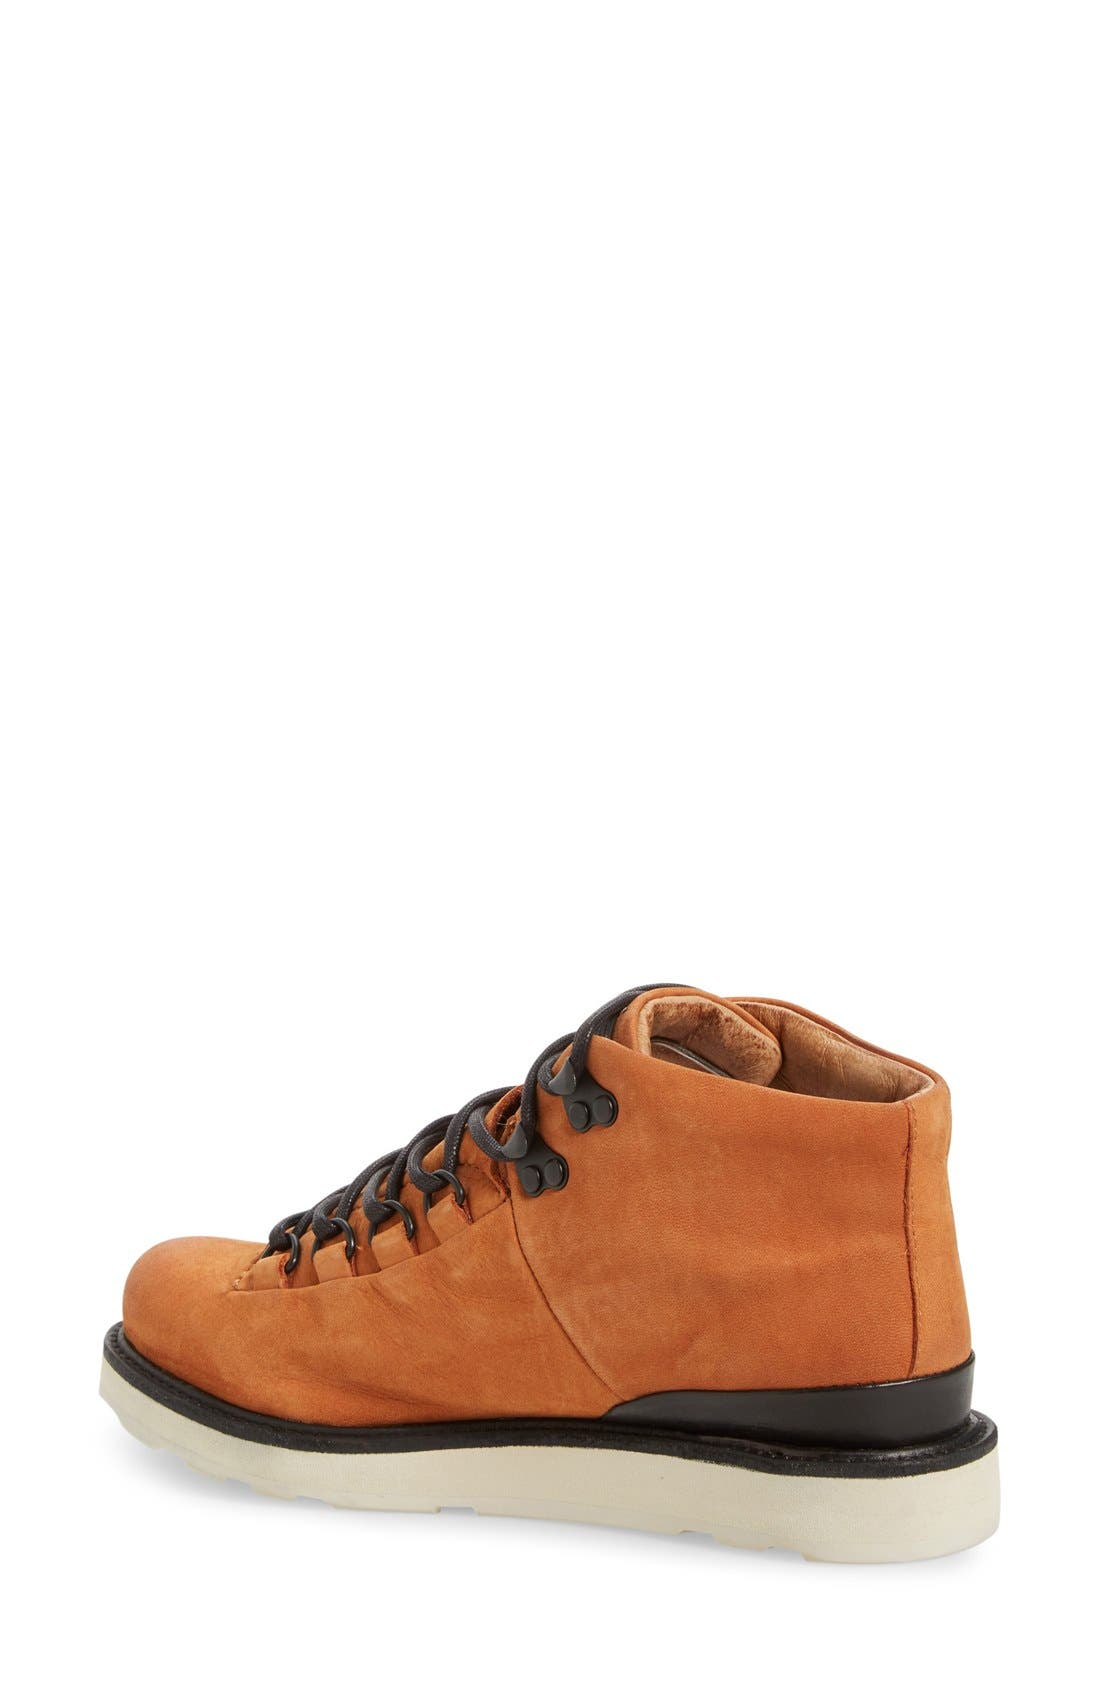 'MW76' Water Resistant Boot,                             Alternate thumbnail 2, color,                             Cortecia Nubuck Leather